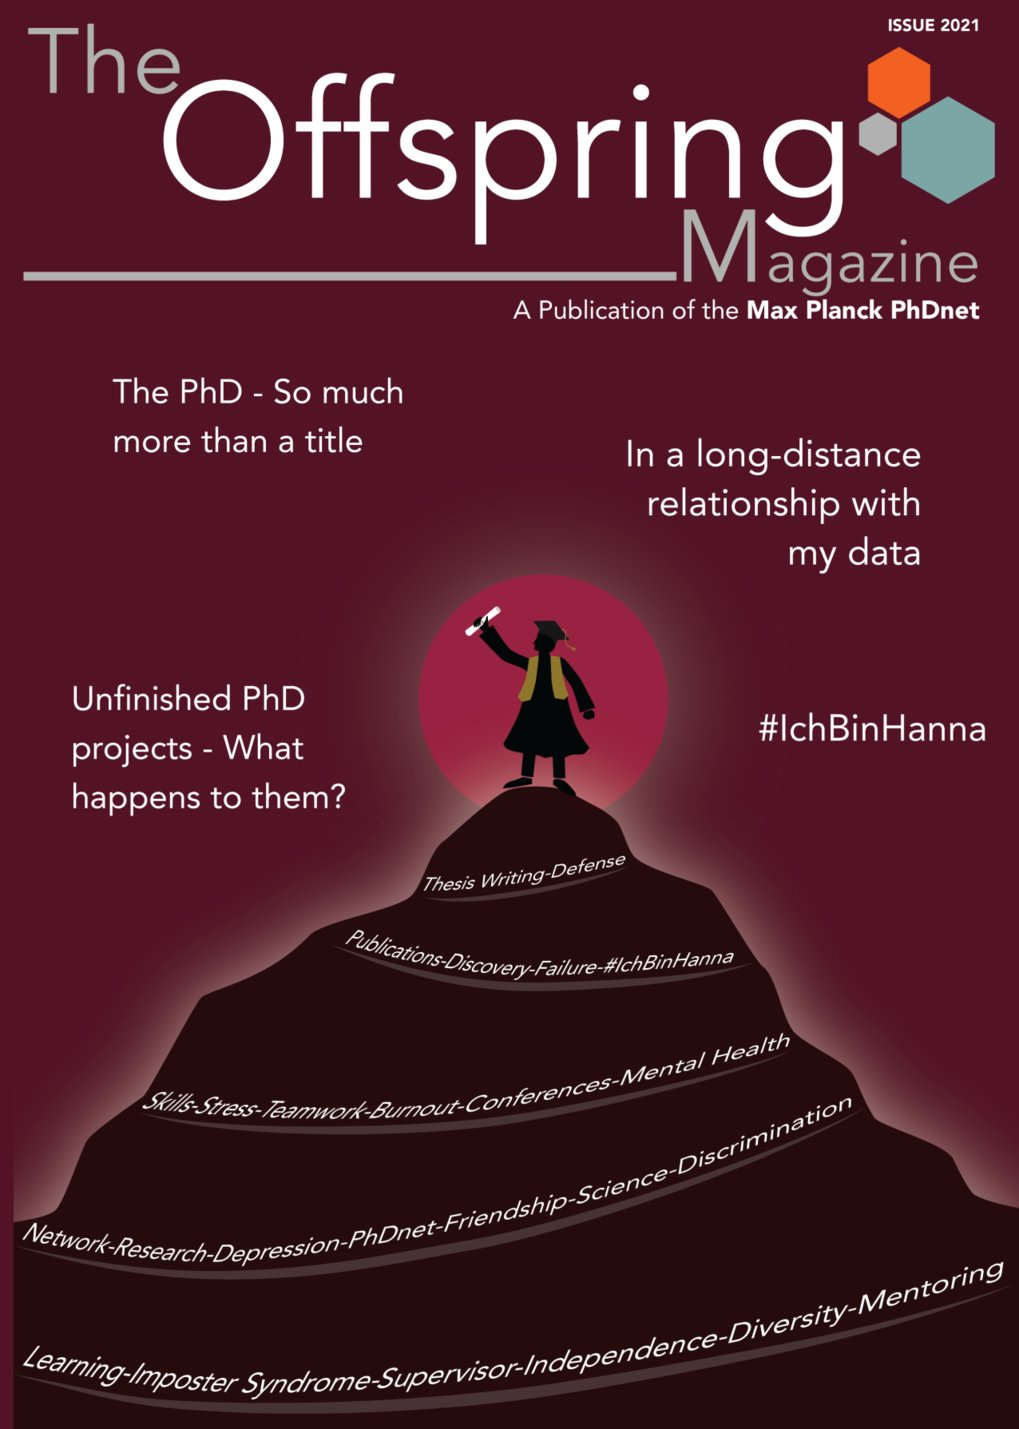 Read our newest Issue of the Offspring magazine here.